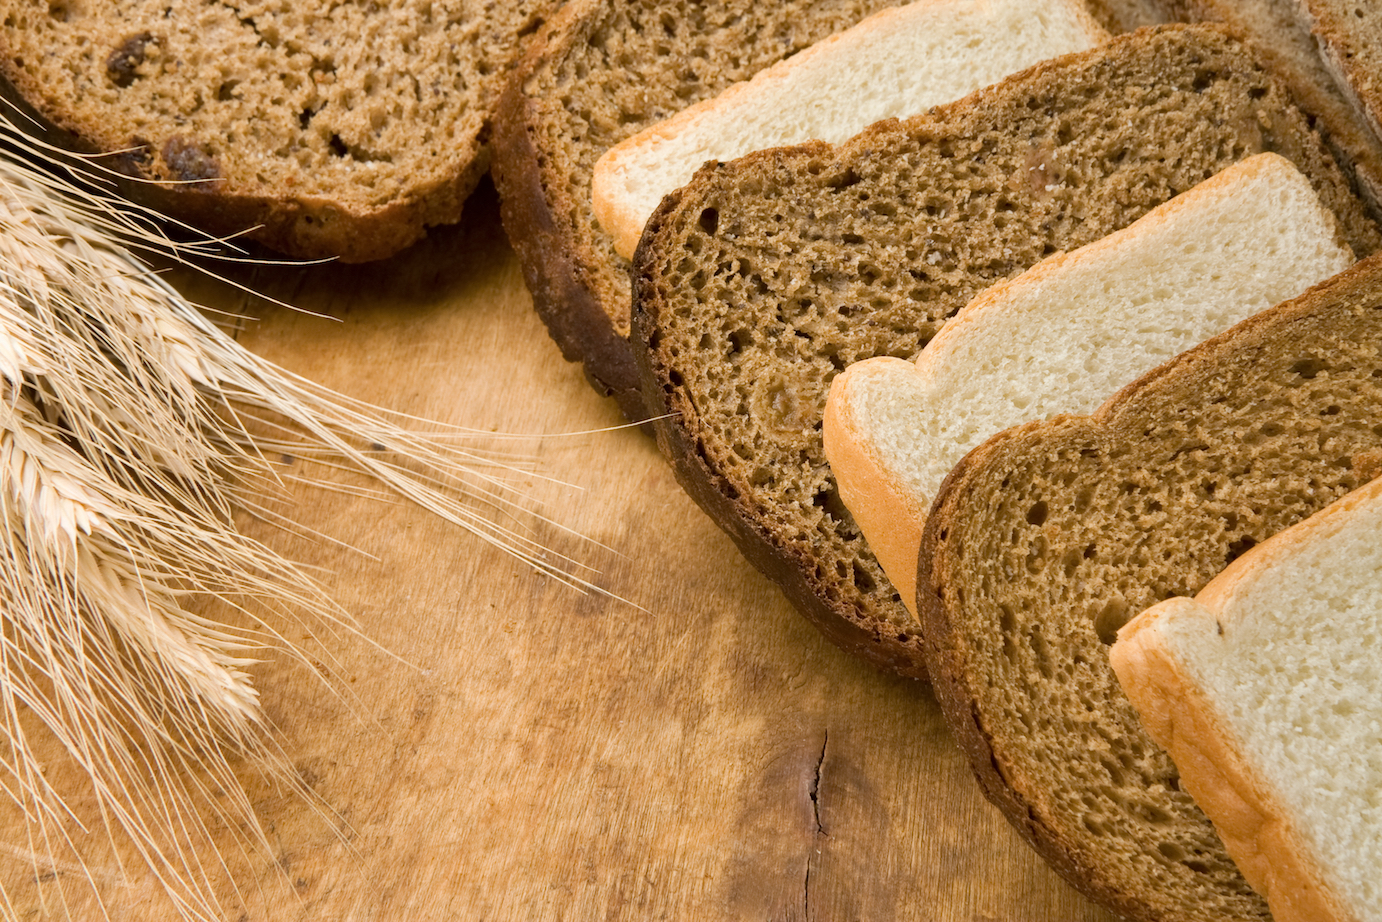 An emerging study analyzes the health value of white bread versus wheat bread, and the effect these types of bread have on the microbiome.